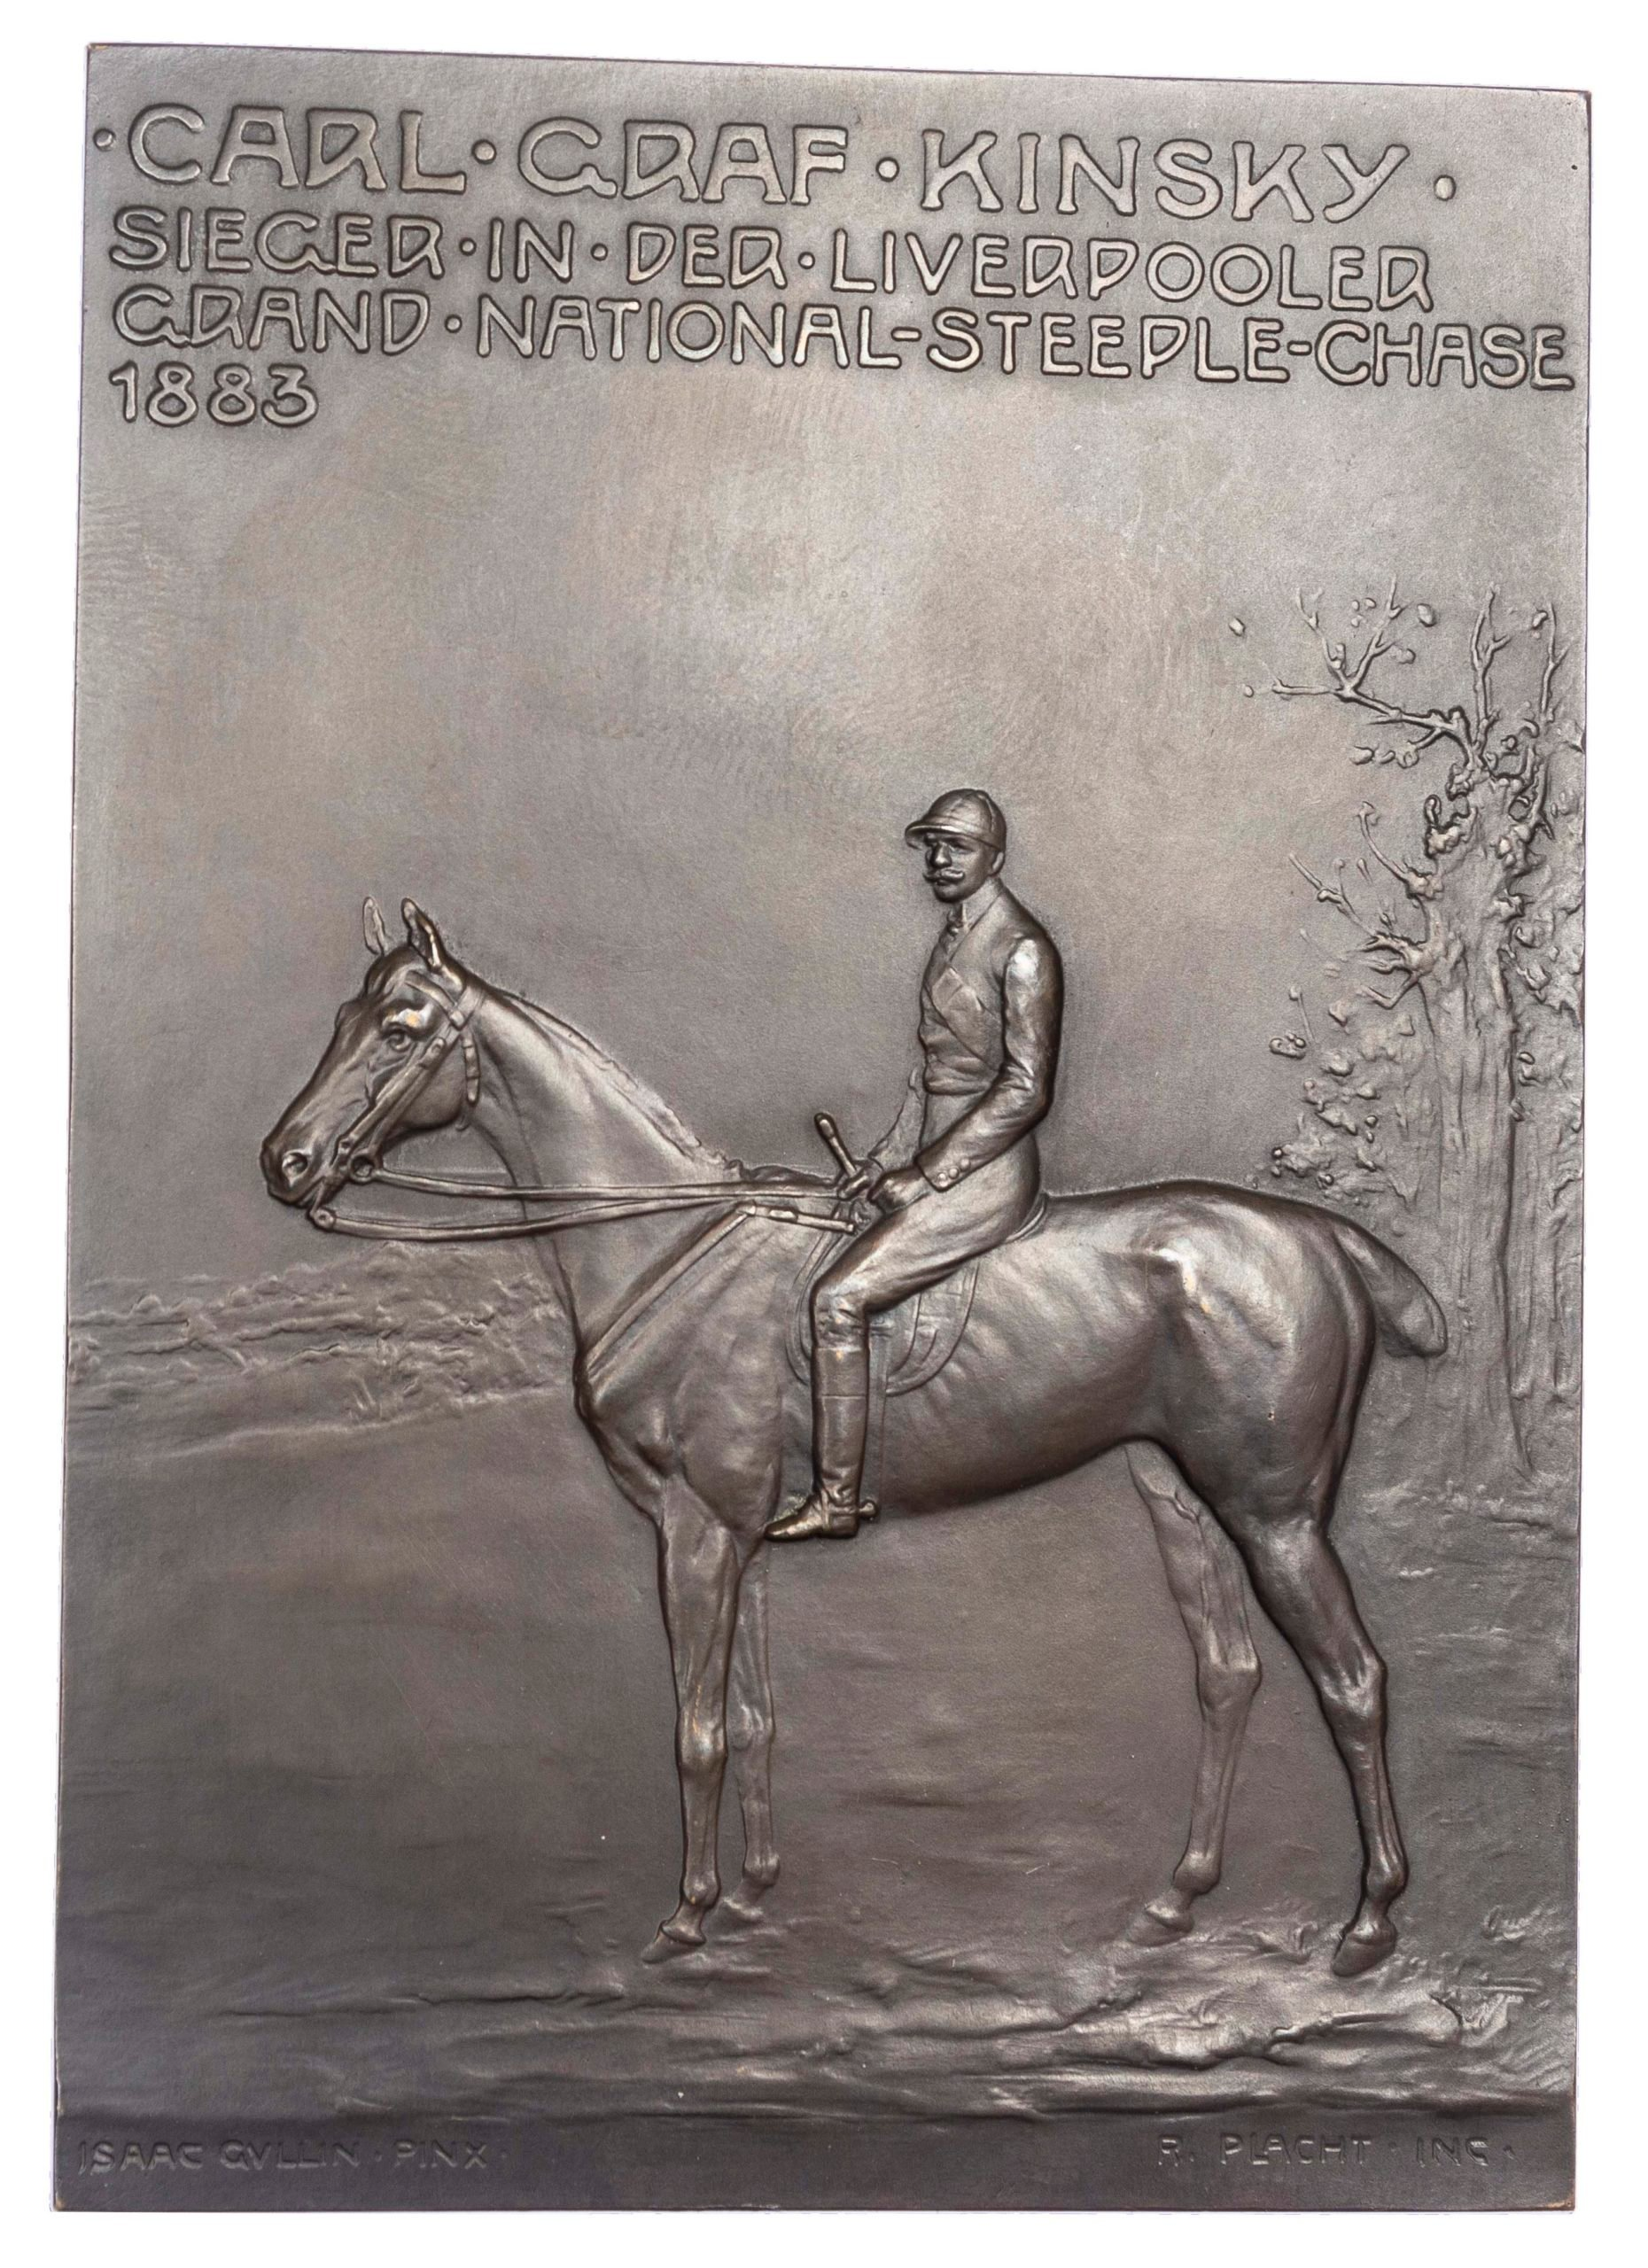 Austria, Winner of the Grand National 1883 – Count Kinsky on Zoedone, AE plaque 1908